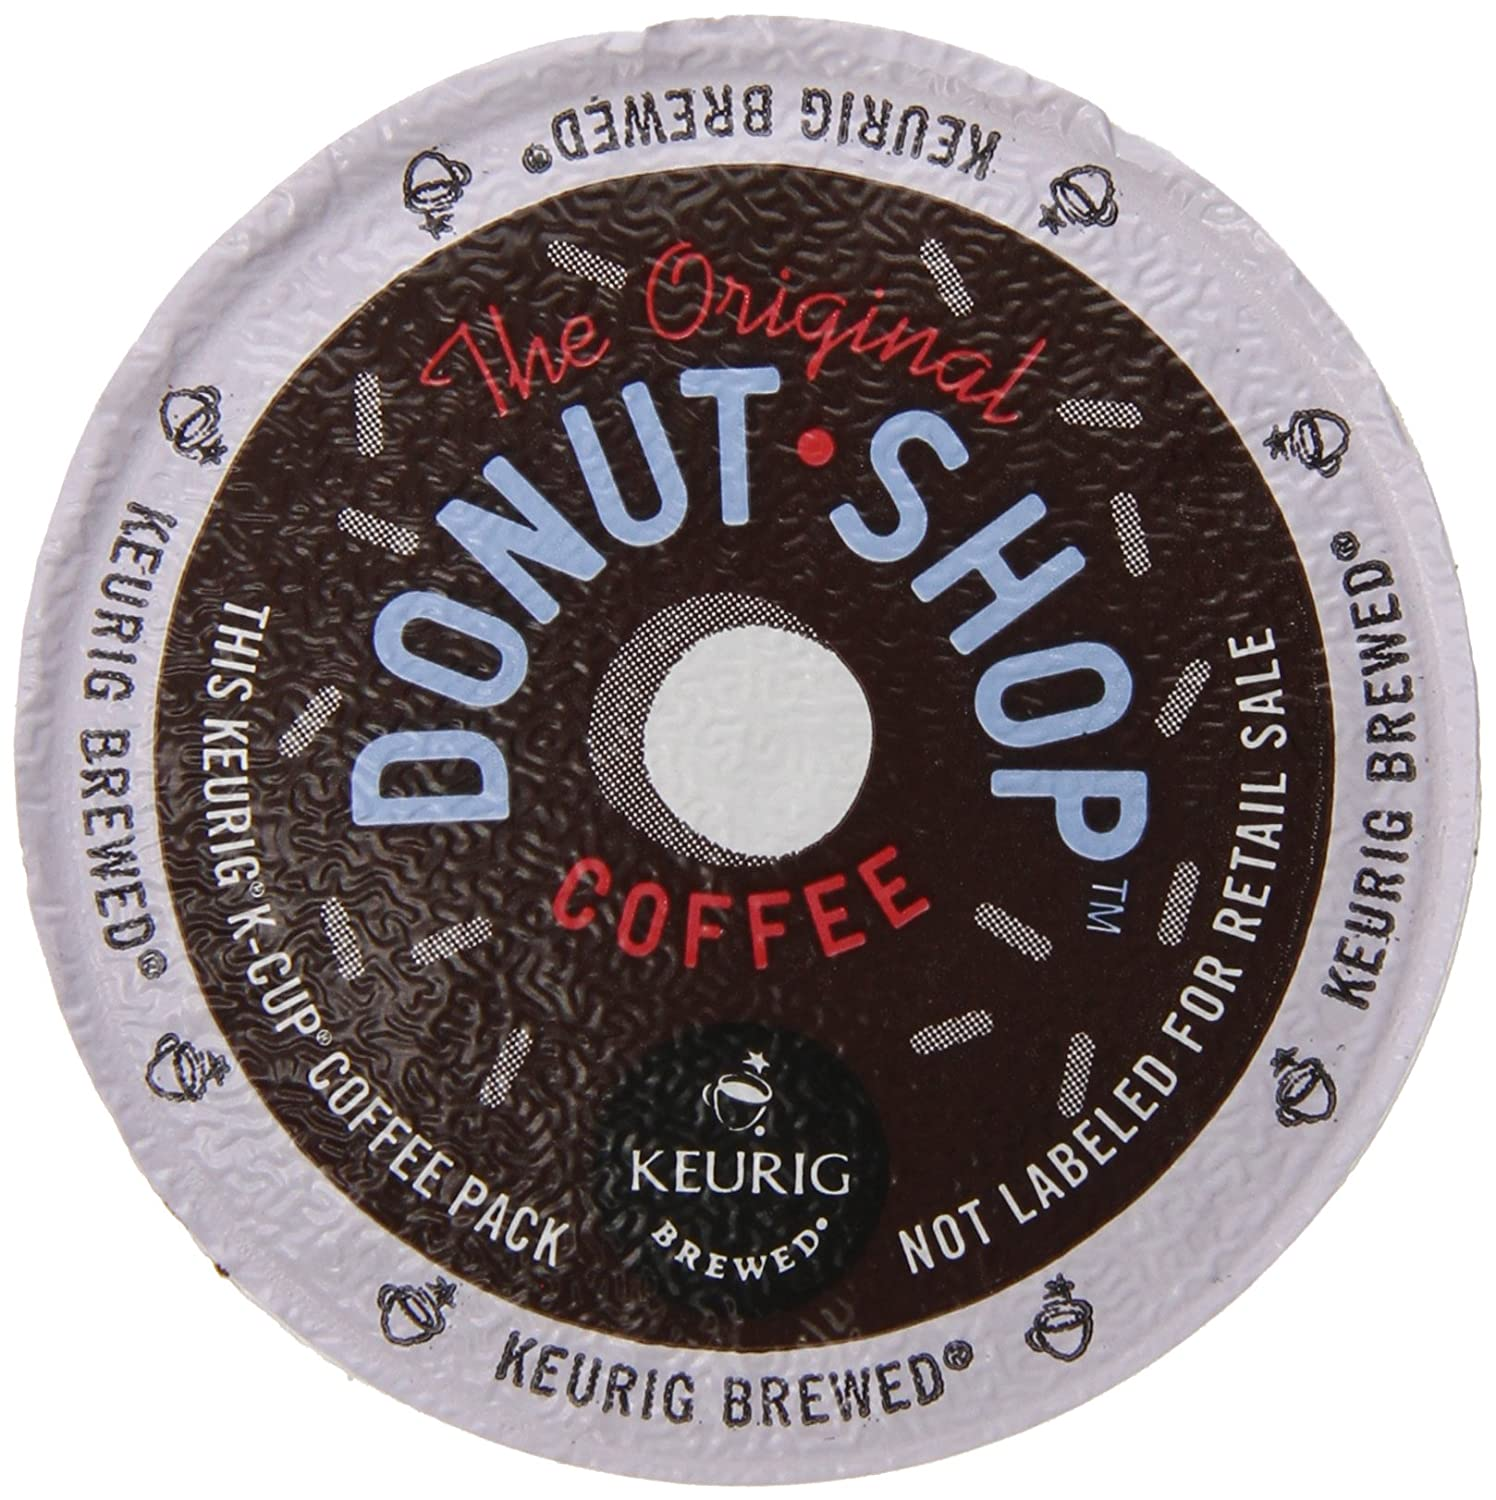 Keurig, The Original Donut Shop, Medium Roast Coffee, K-Cup Counts, 50  Count: Amazon.com: Grocery & Gourmet Food